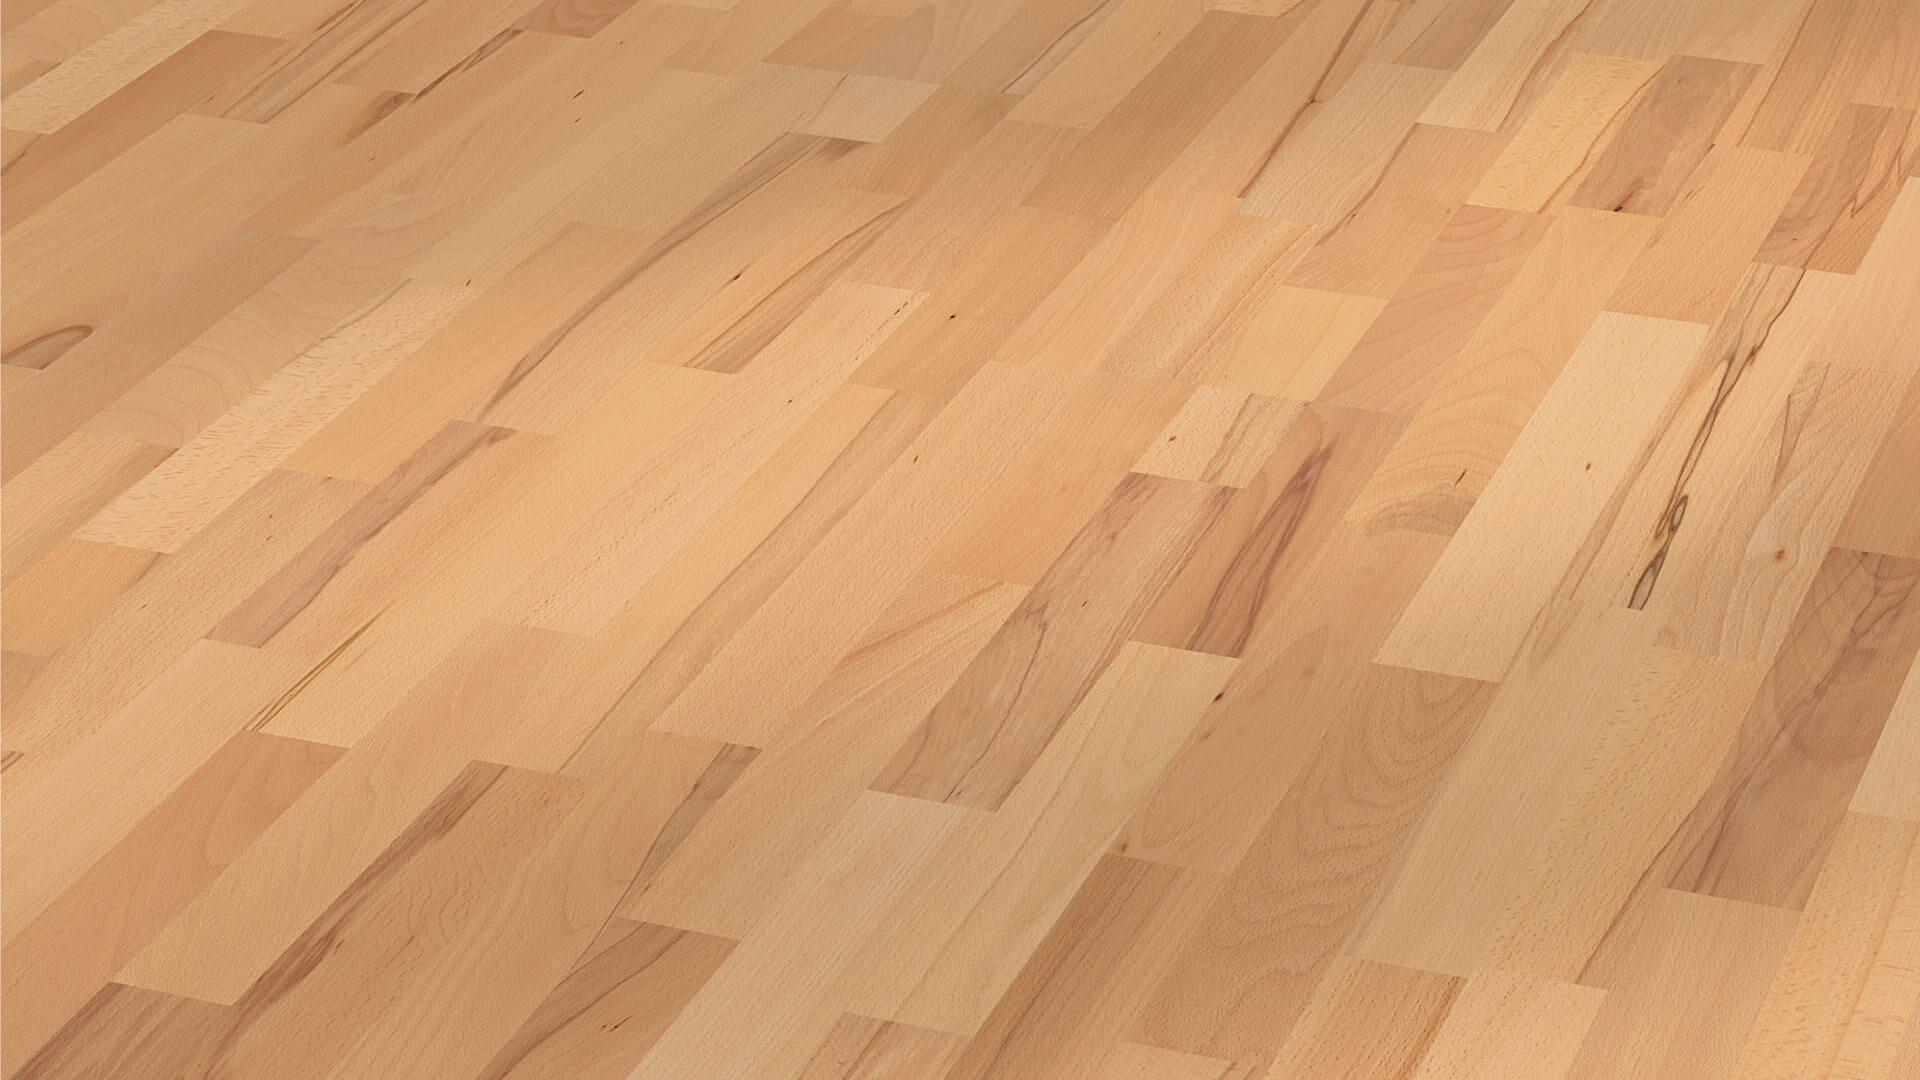 Parquet flooring MeisterParquet. longlife PC 200 Steamed beech lively 8186